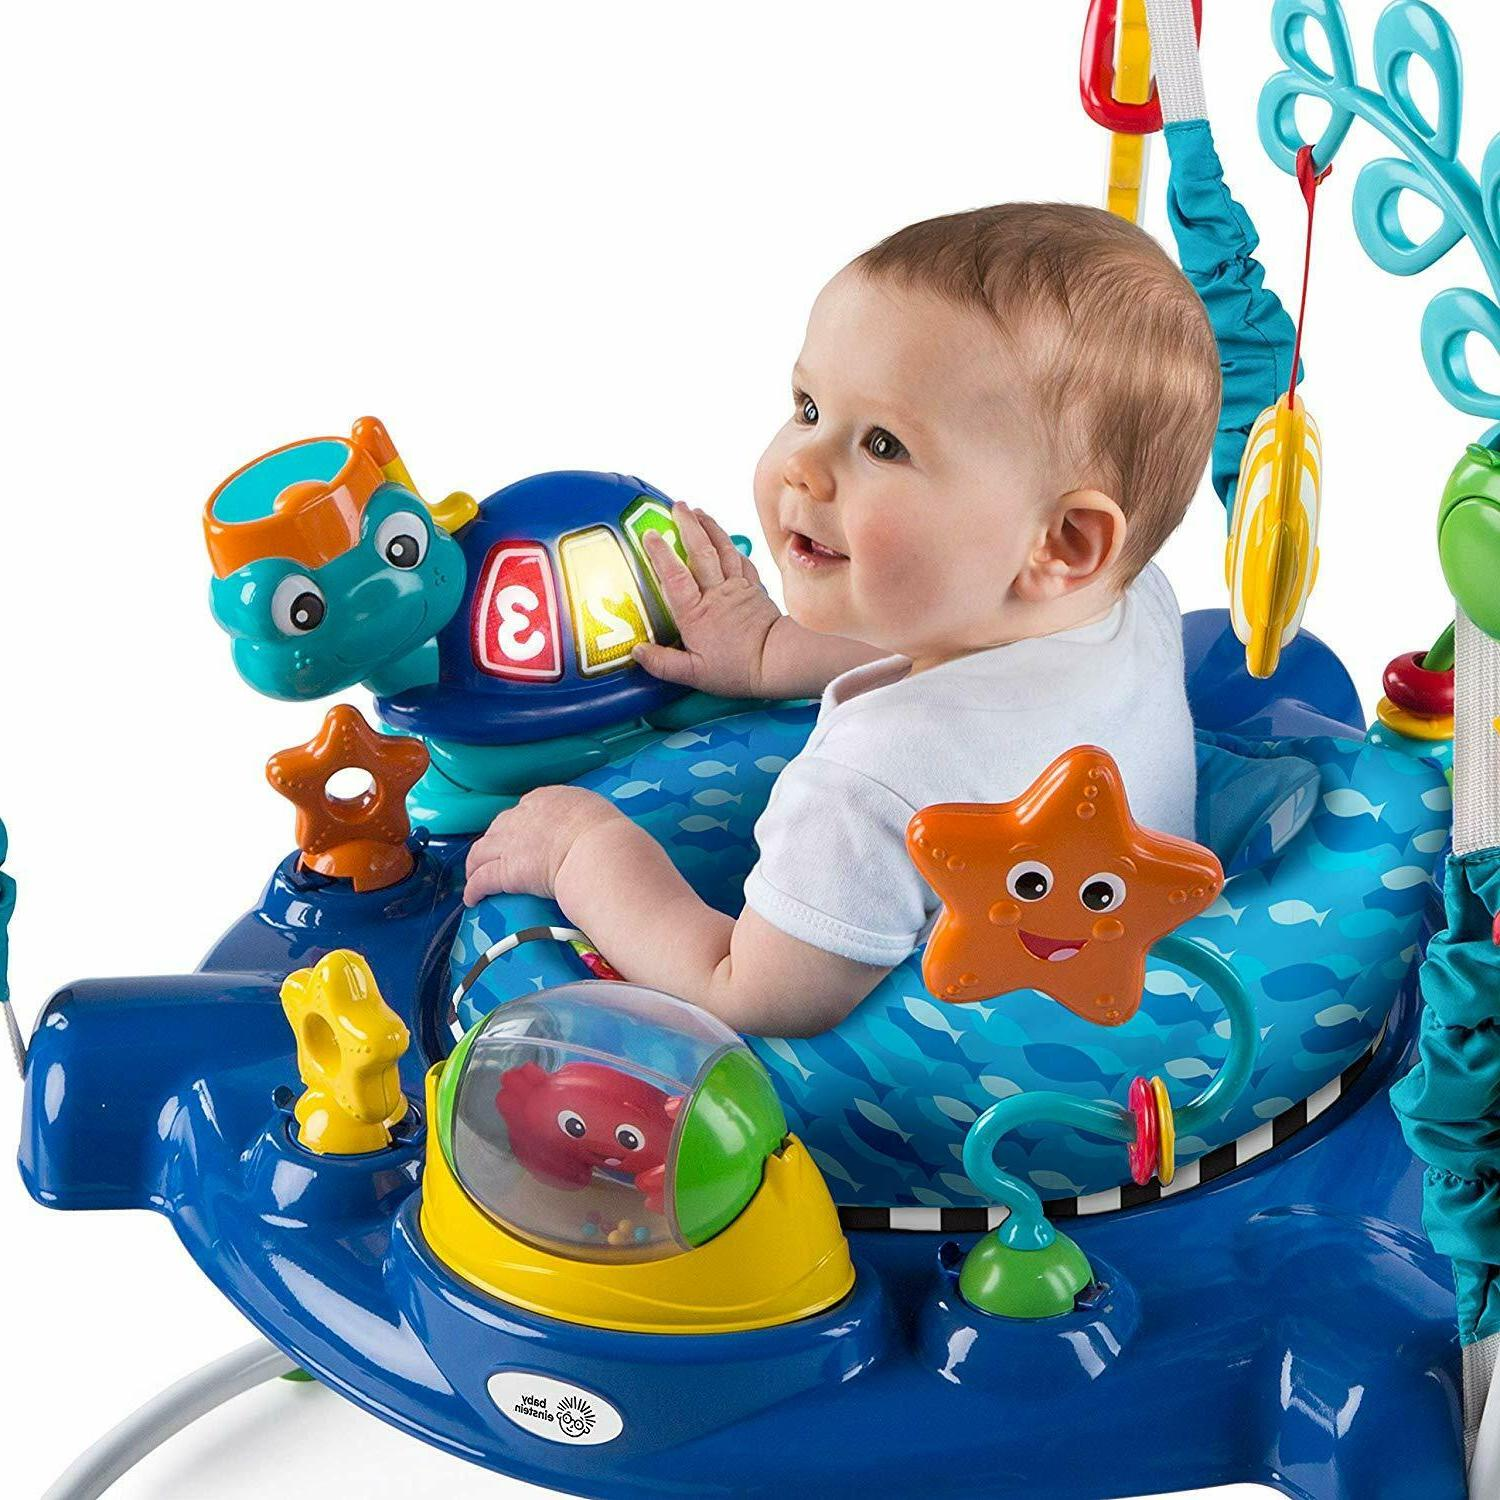 Baby Discovery Jumper swivels Baby Toys